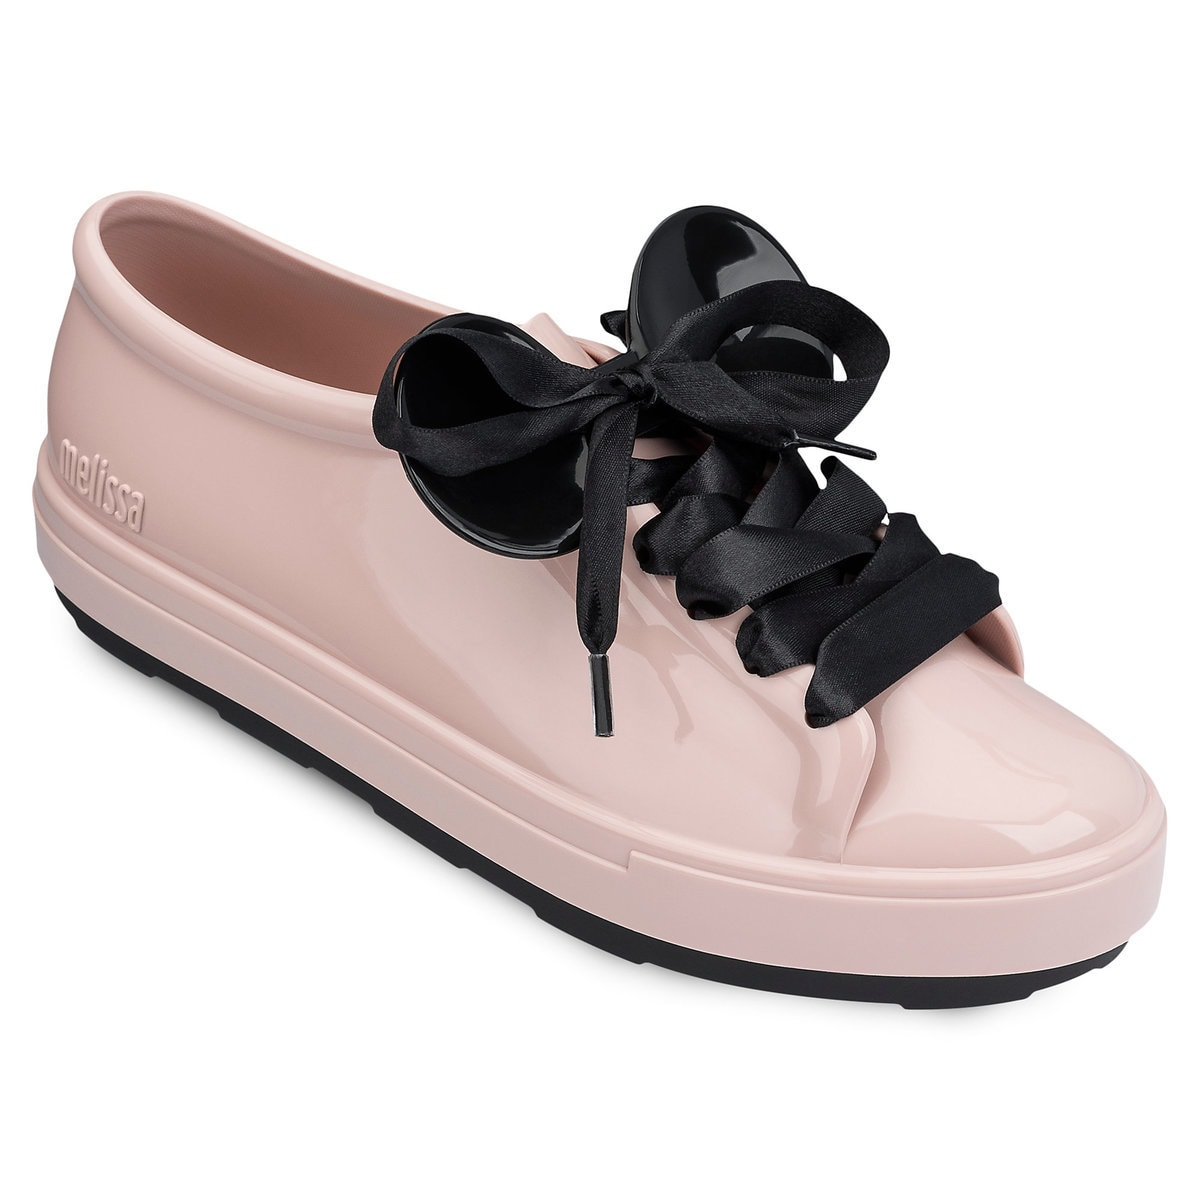 3294b302cc Product Image of Mickey Mouse Sneakers for Women by Melissa - Pink # 1